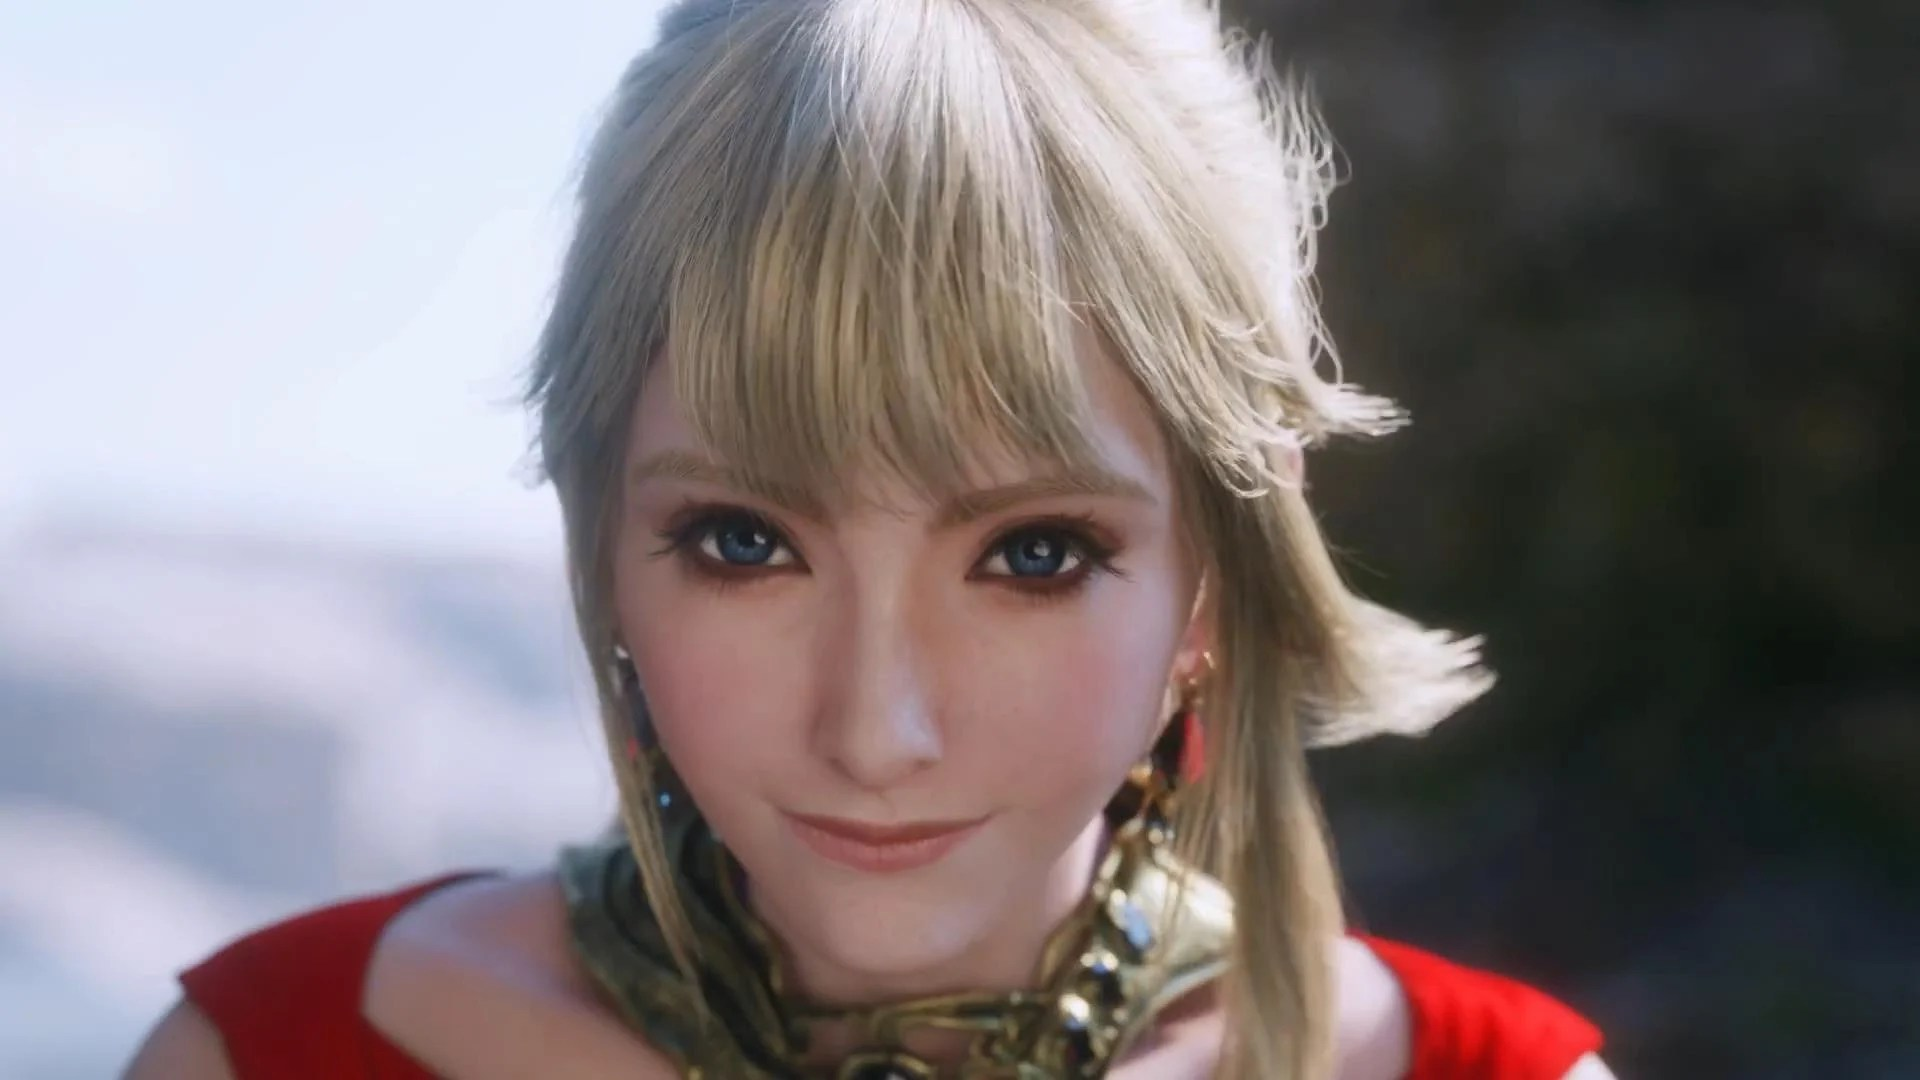 Final Fantasy XIVs New Expansion Stormblood Shines In